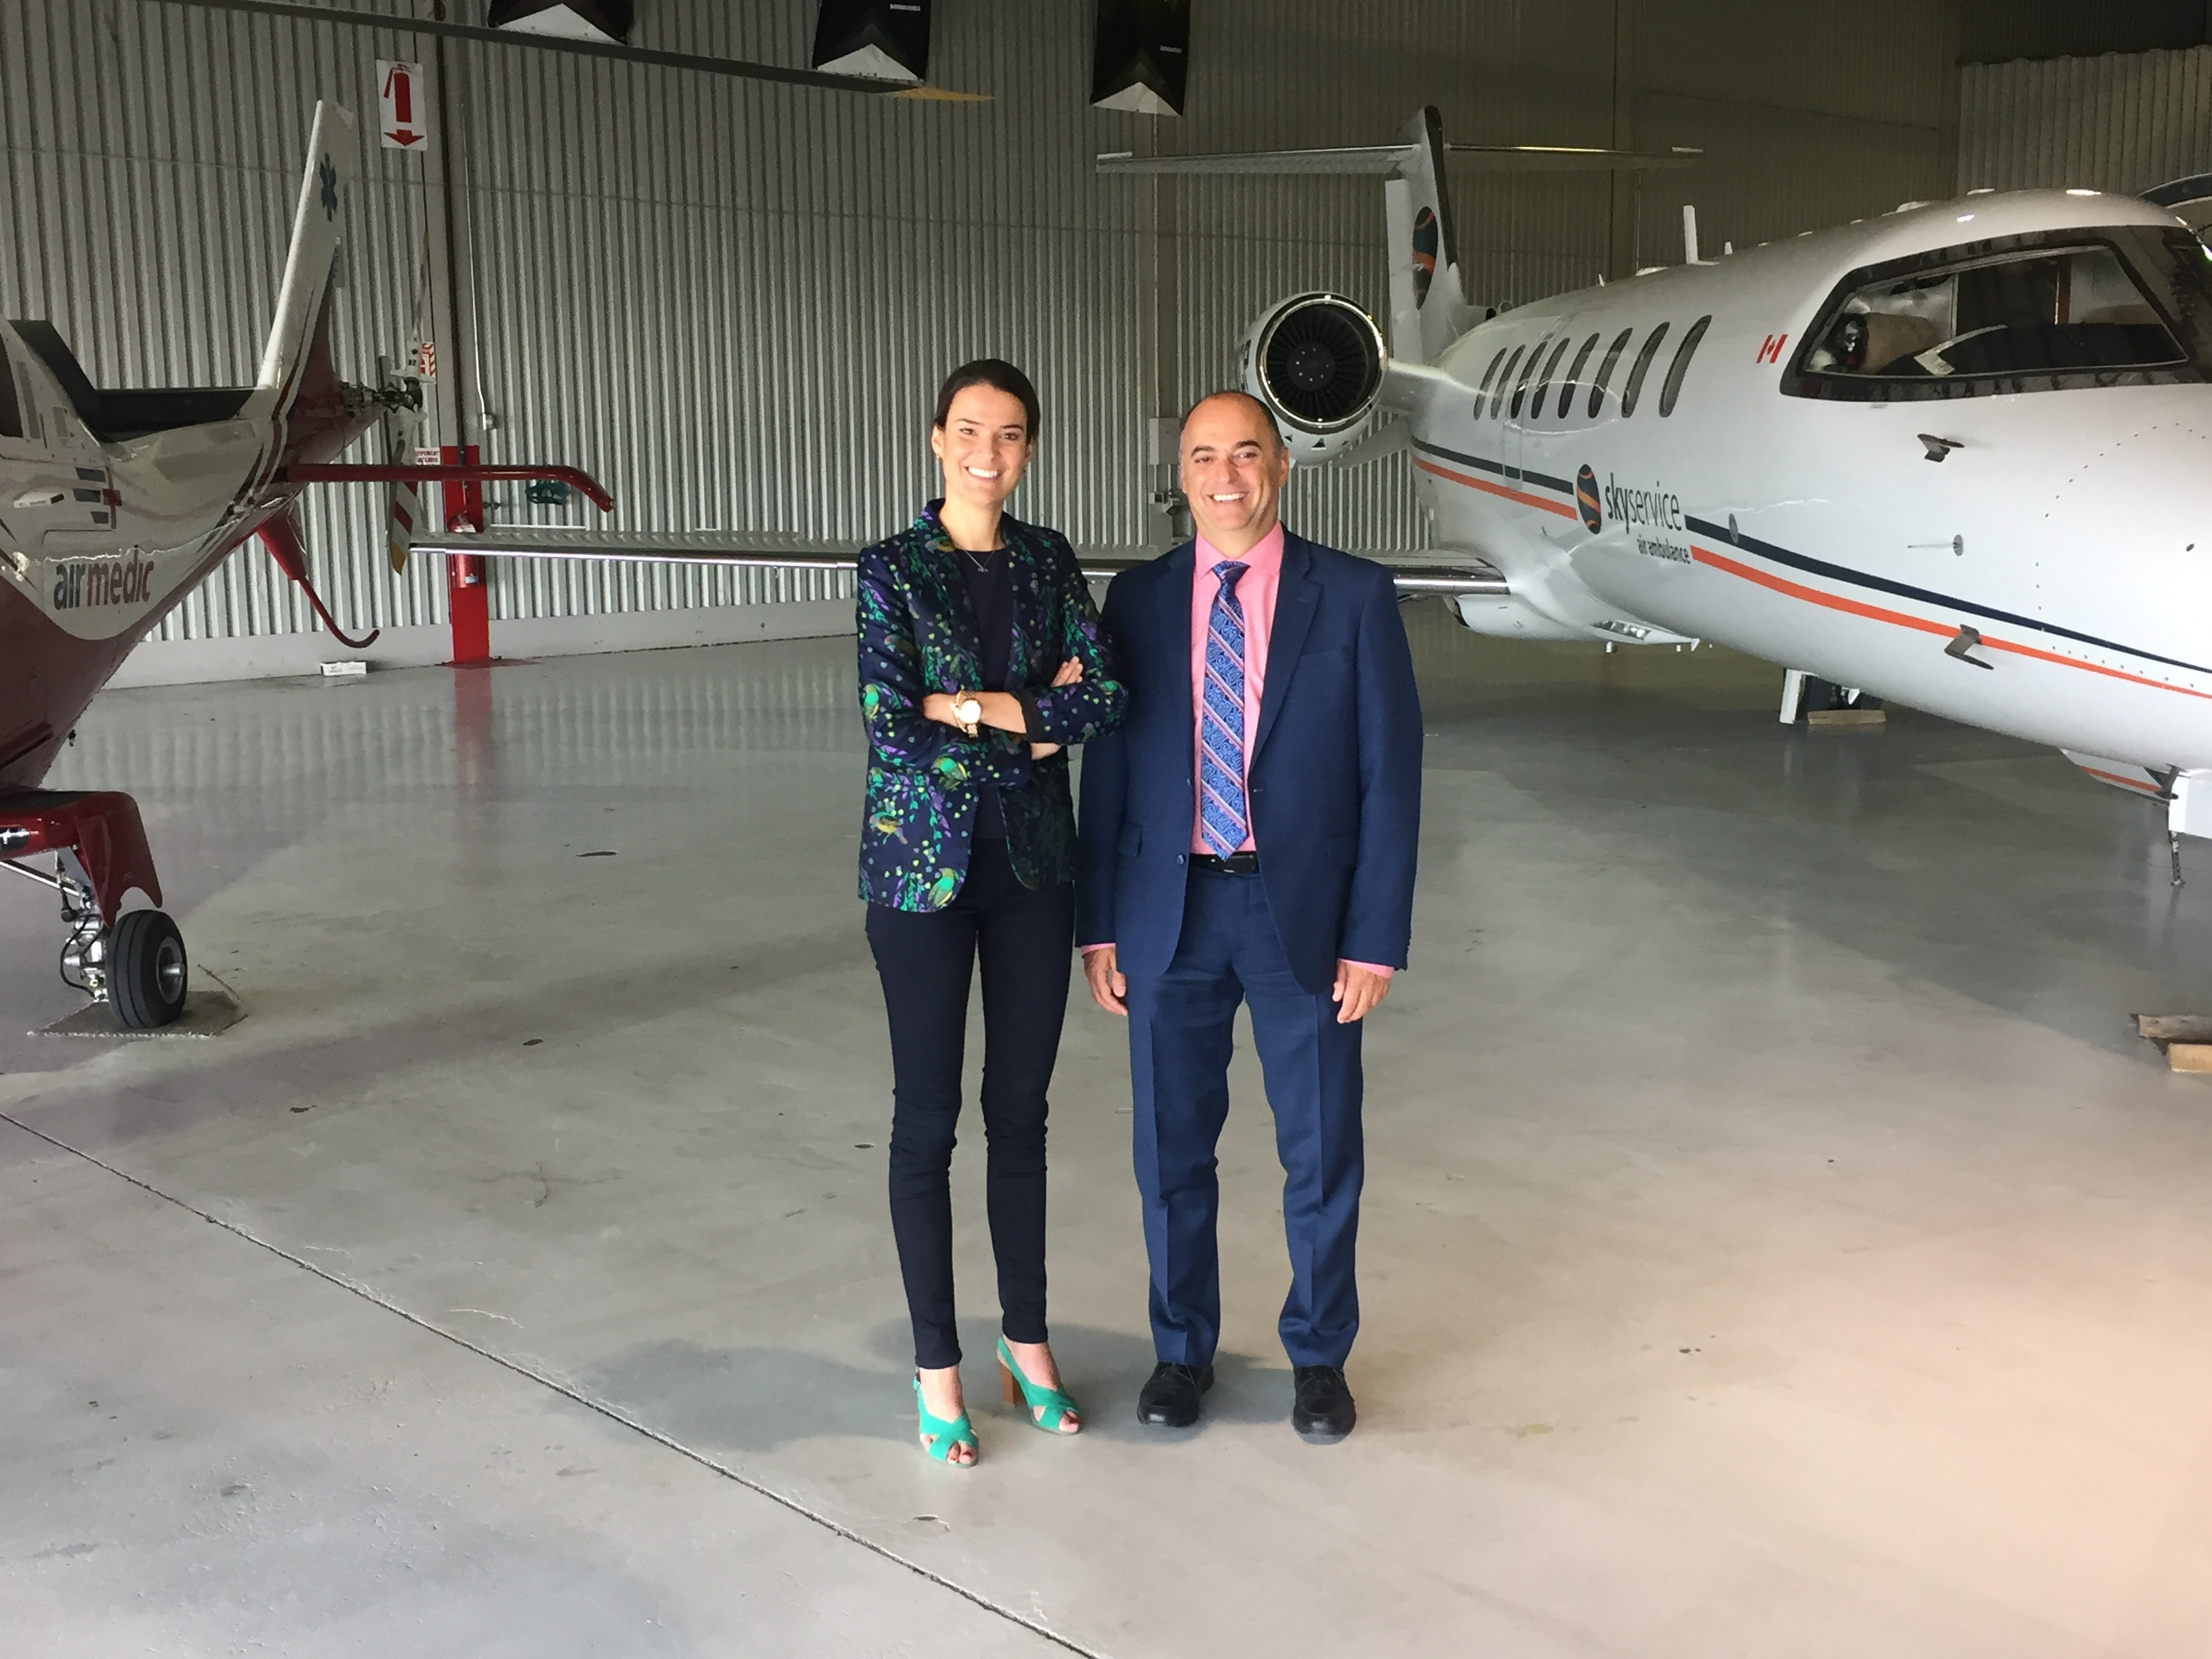 Sophie Larochelle, Airmedic executive vice-president, stands with Sam Cimone, president of Skyservice Air Ambulance International. The two companies have combined resources to offer comprehensive critical care air ambulance service. Airmedic Photo